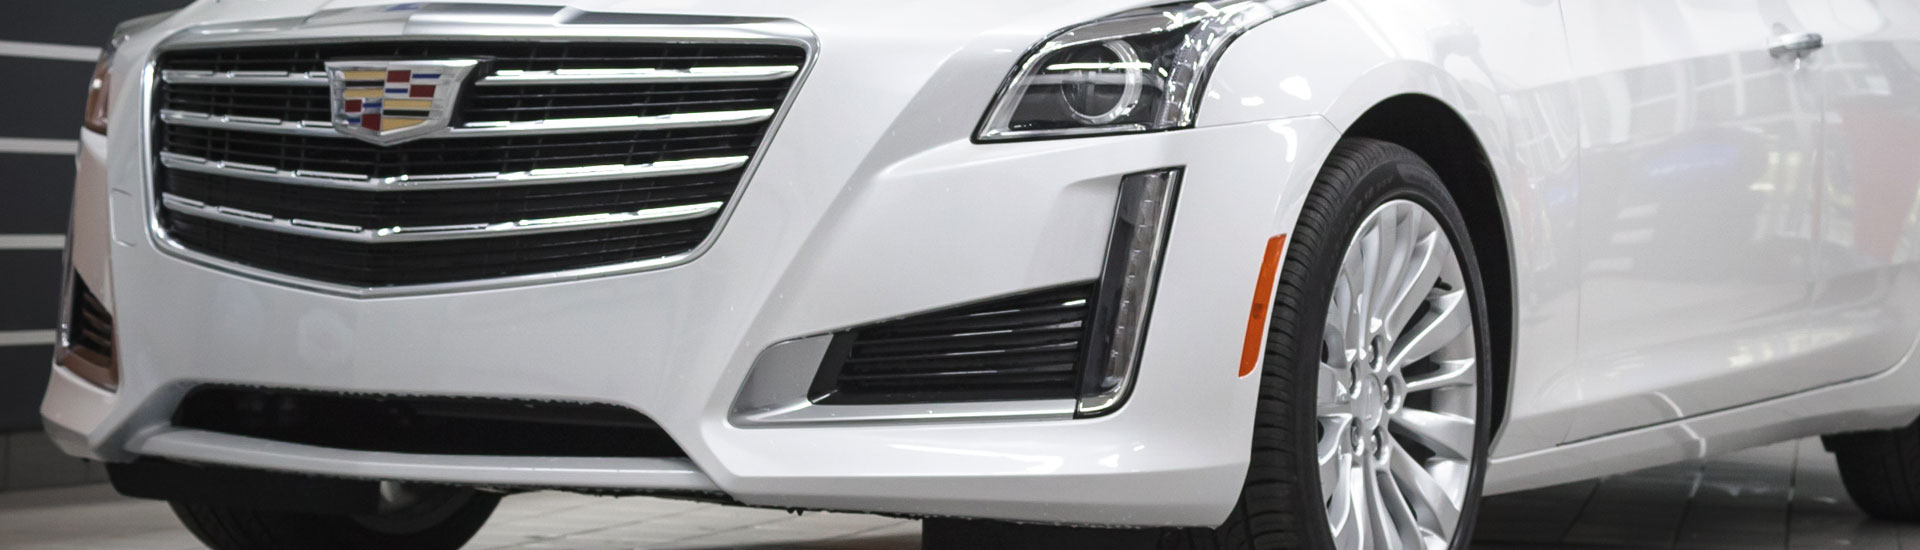 Cadillac Paint Protection Kits